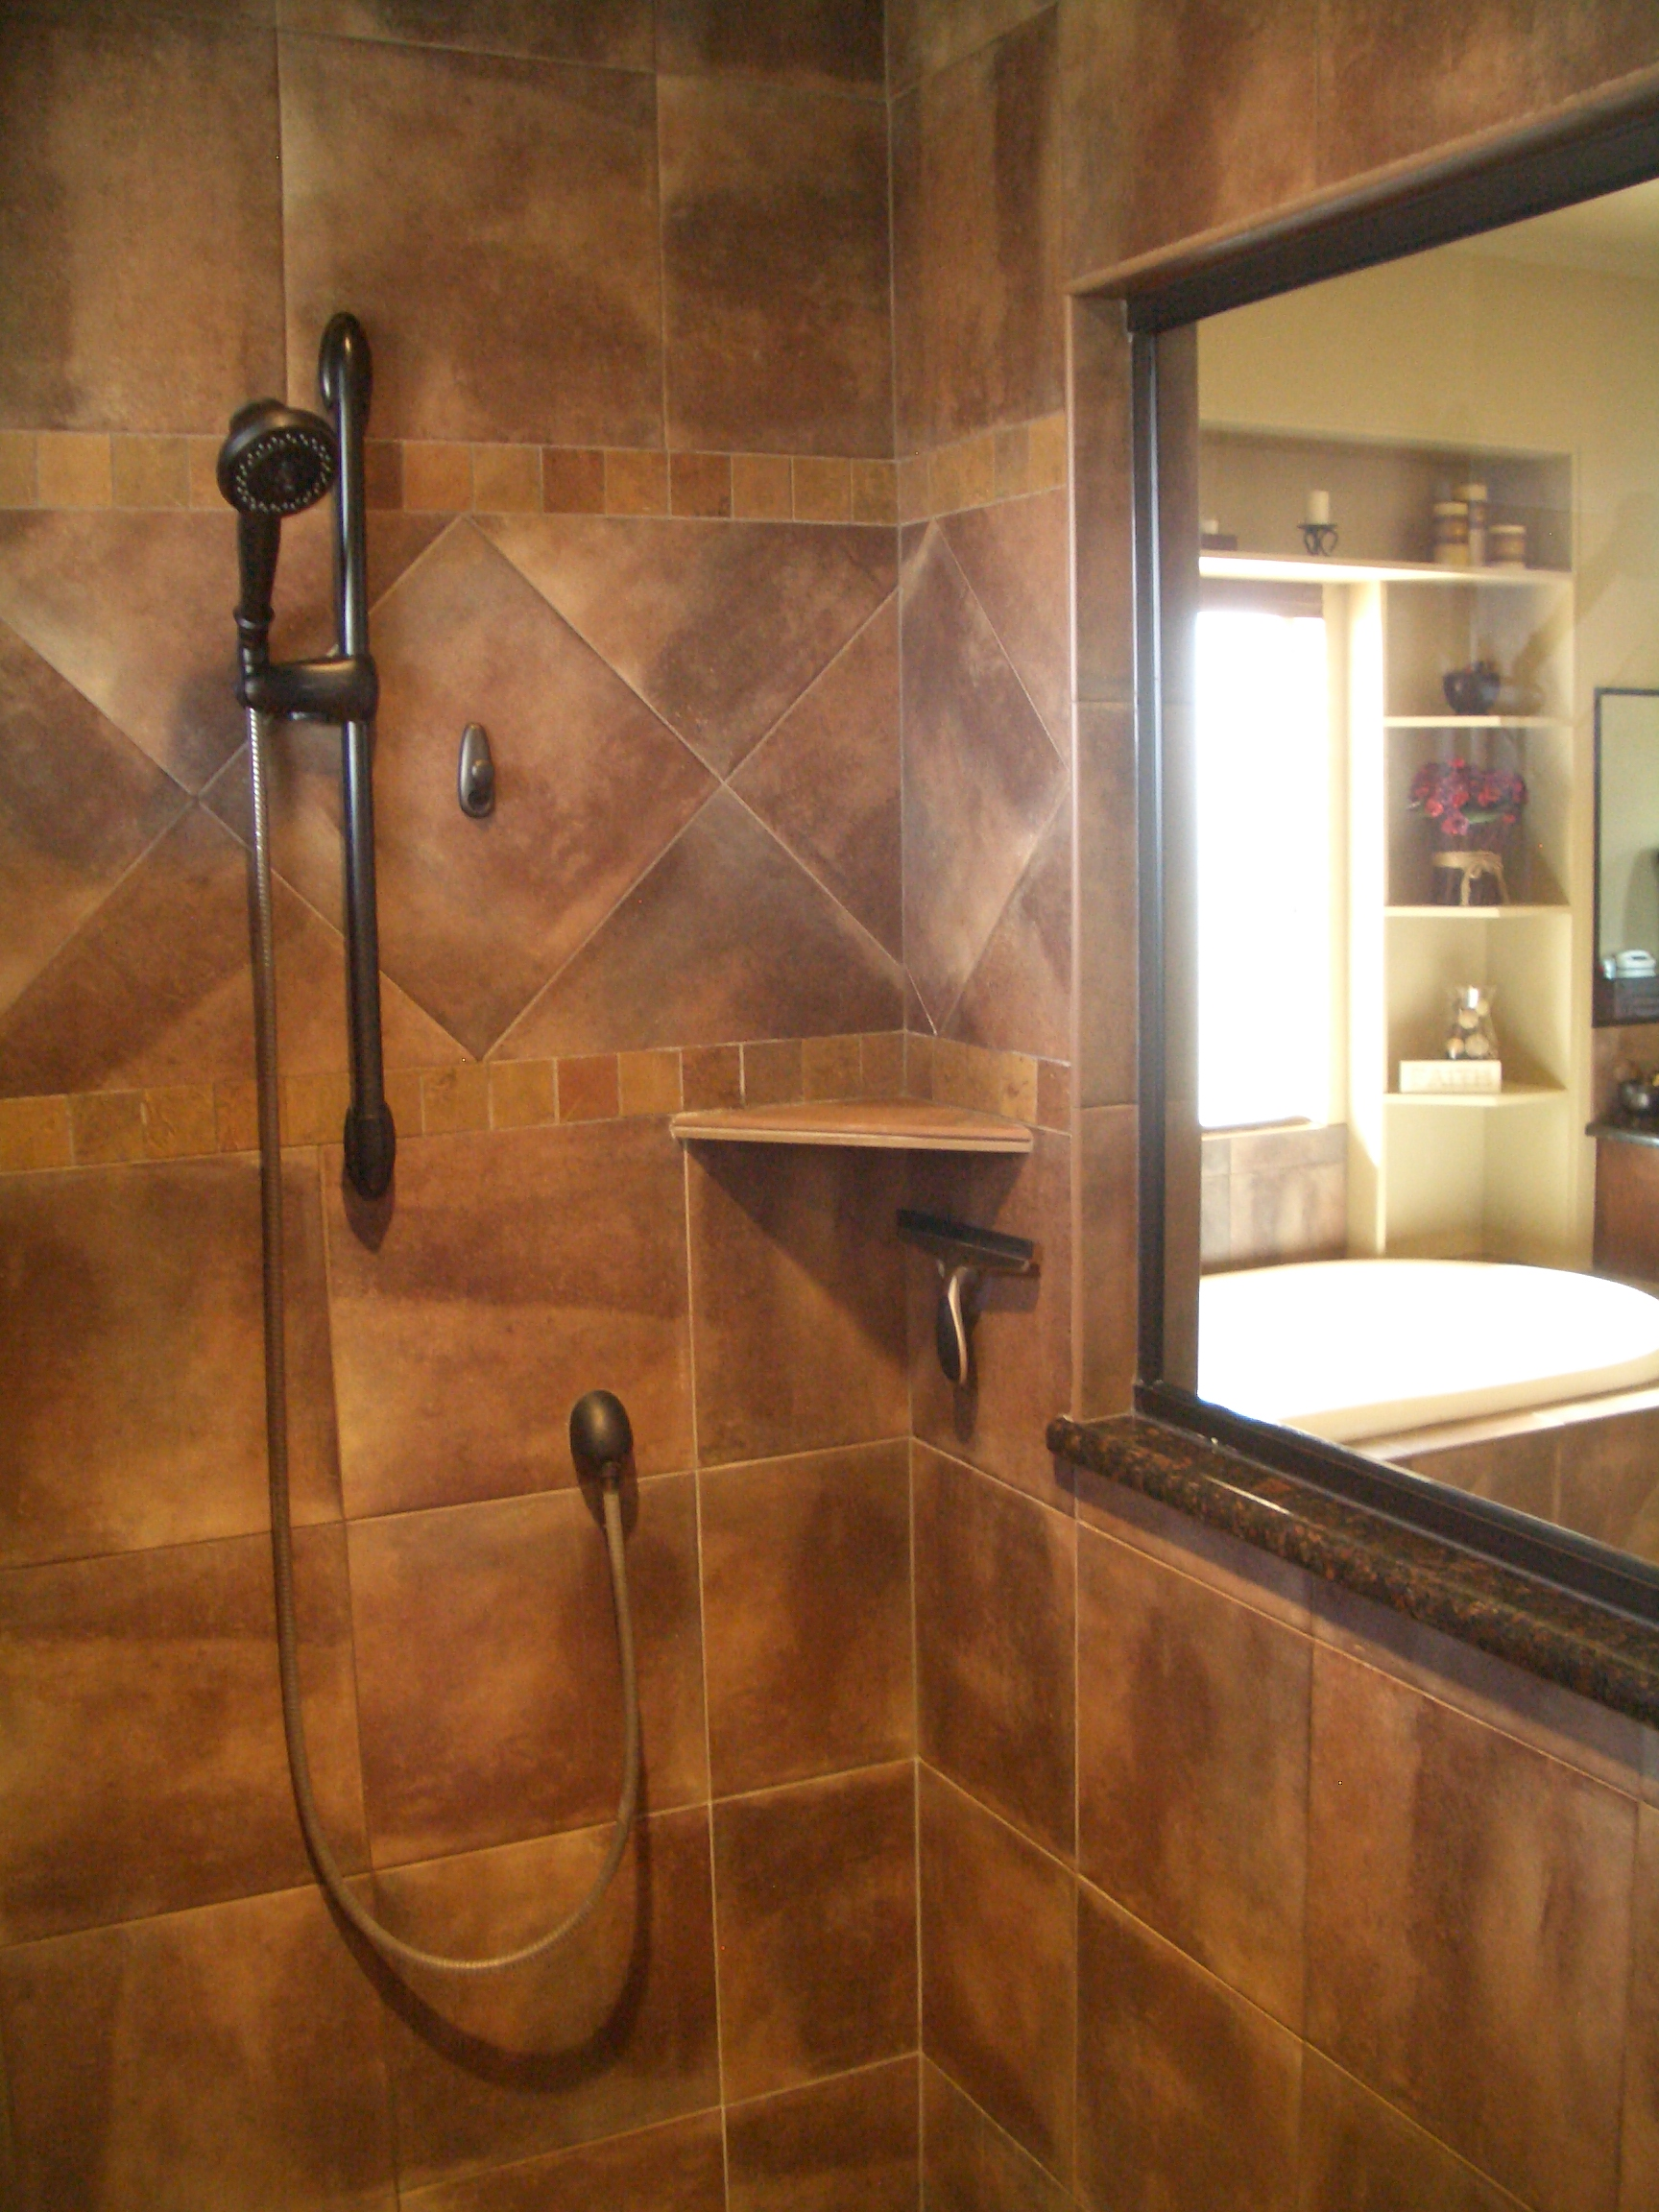 Shower upgrade options Install tile shower